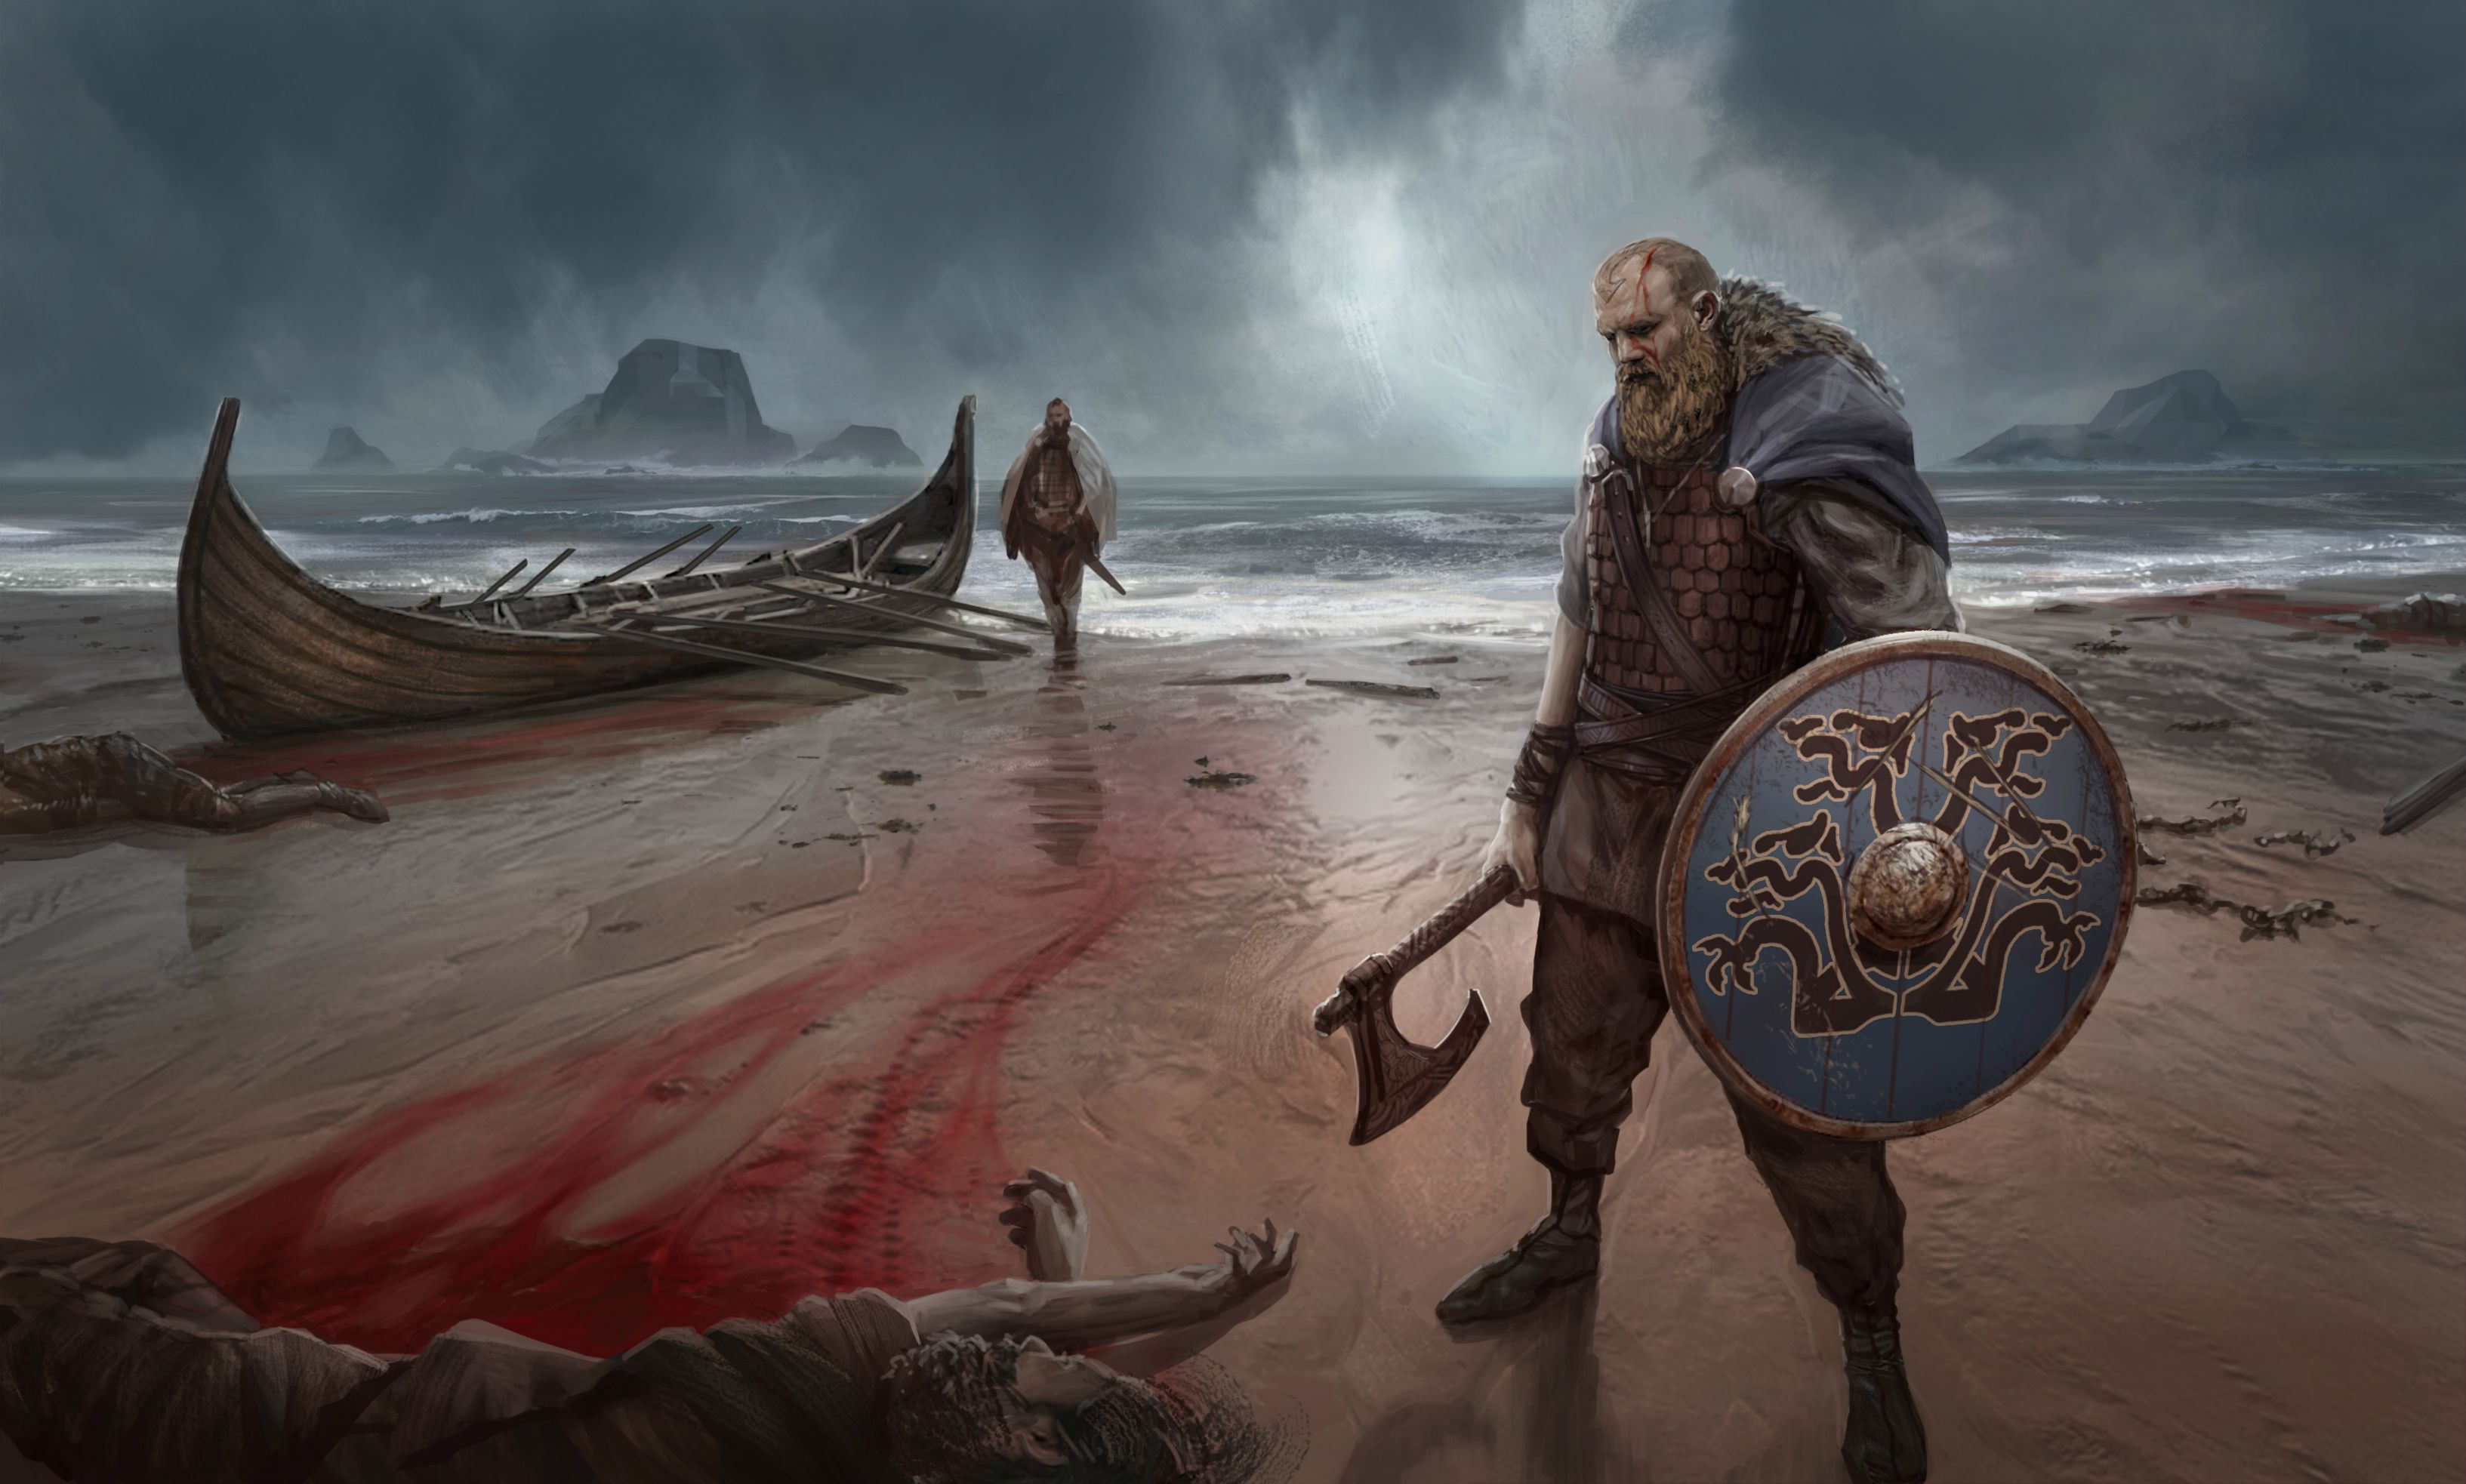 Hey reddit, I painted this viking painting! what do you